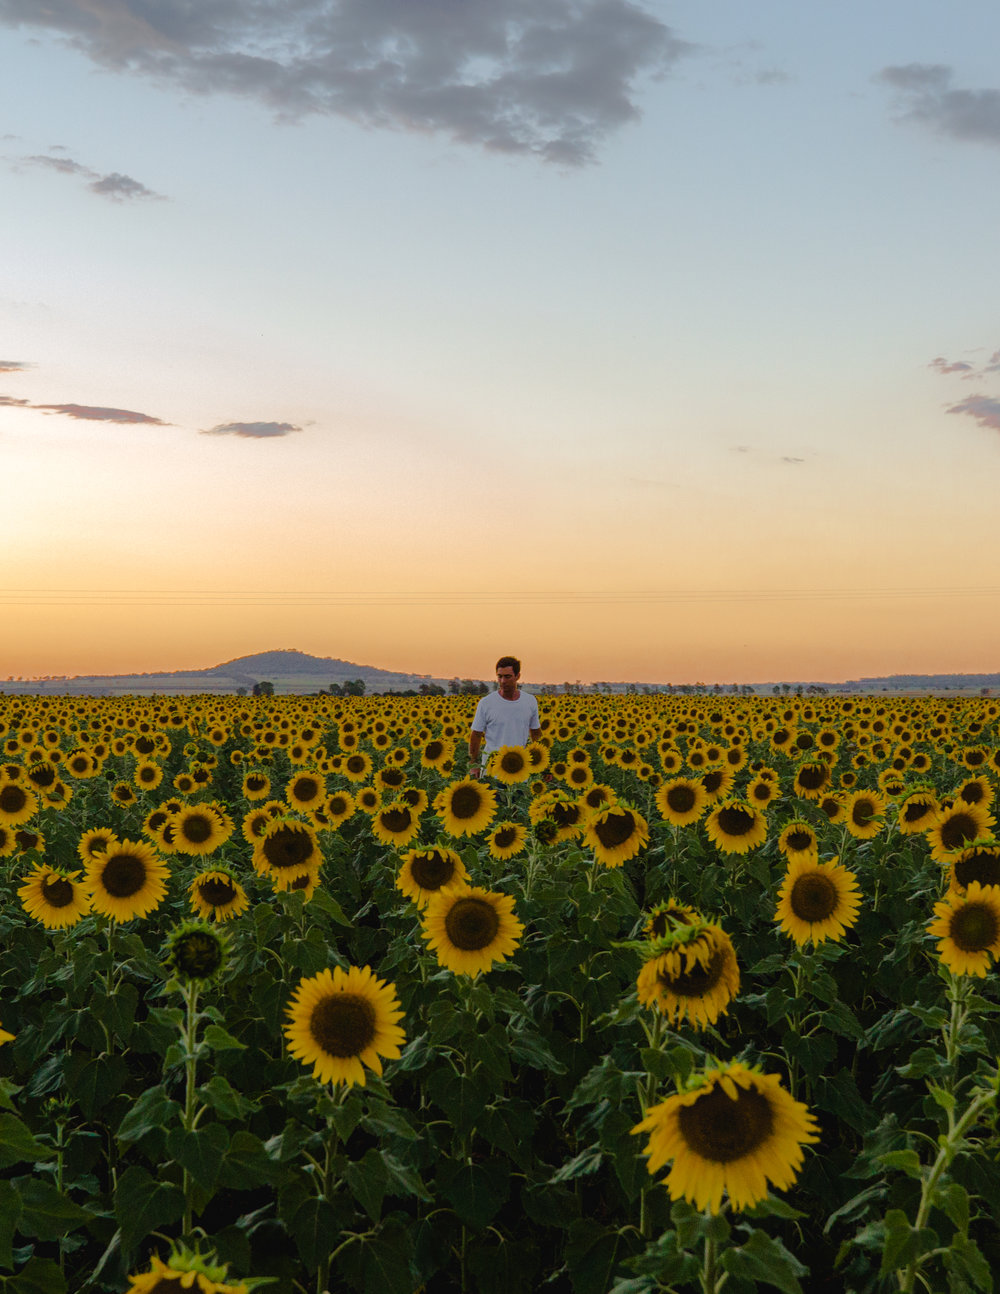 The Sunflowers at Sunset